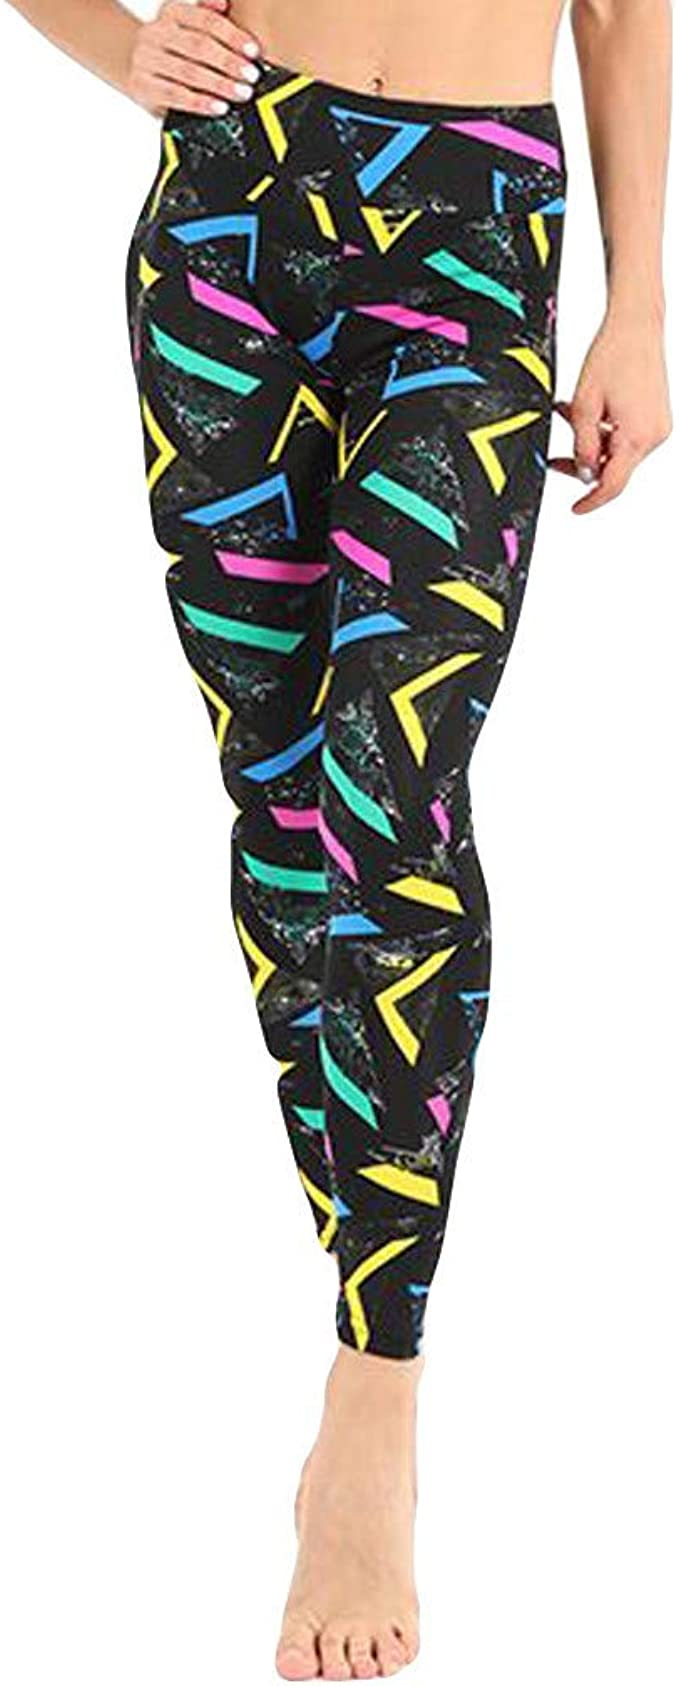 Christmas Women Yoga Pants Cute Xmas Graphic Print Print Fitness Leggings Casual Color Block High Waist Running Workout Sweatpant Breathable Gym Stretch Tights Sports Trouser